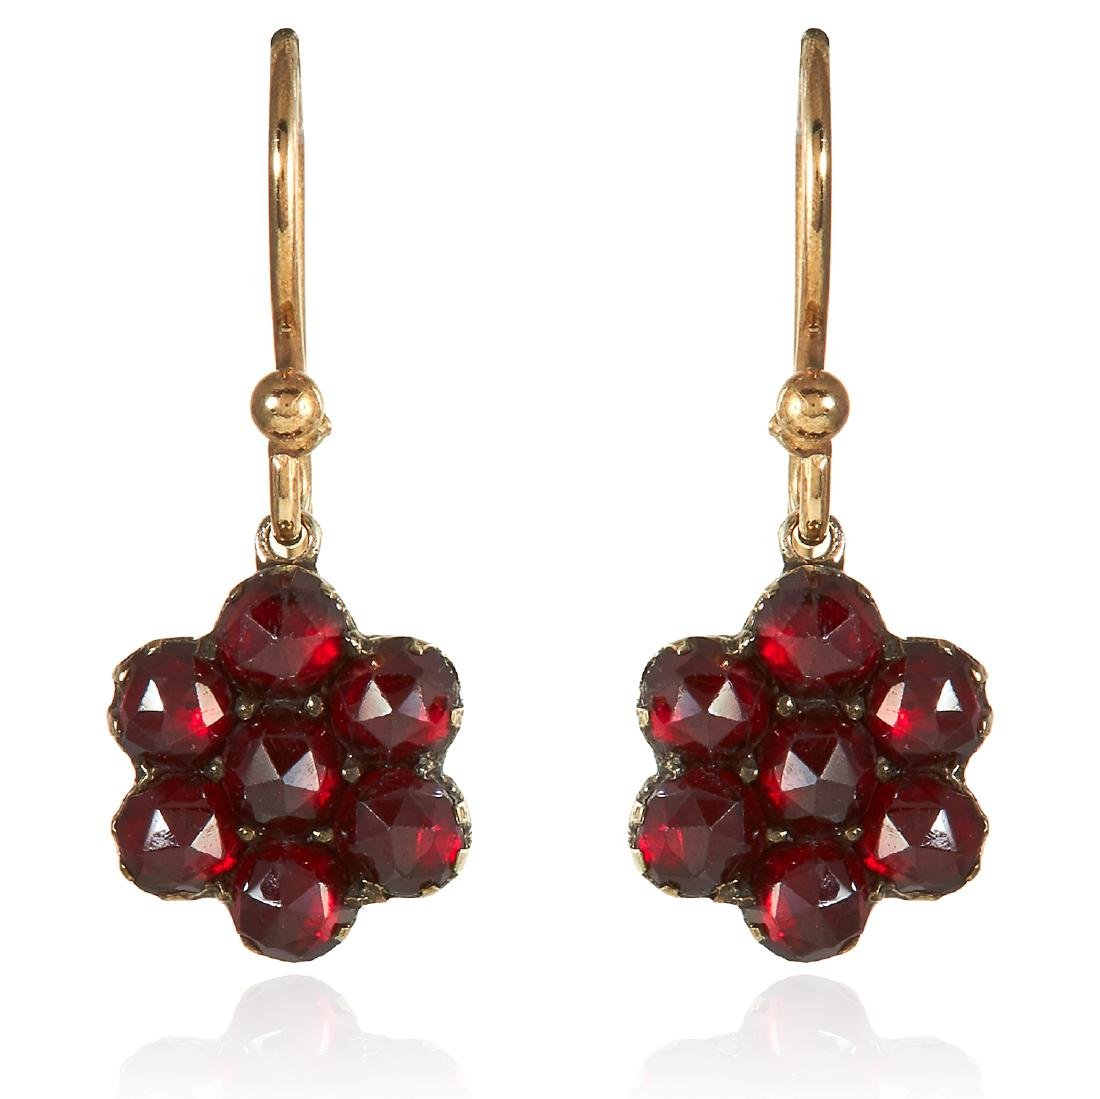 A PAIR OF GARNET EARRINGS in yellow gold, designed as a